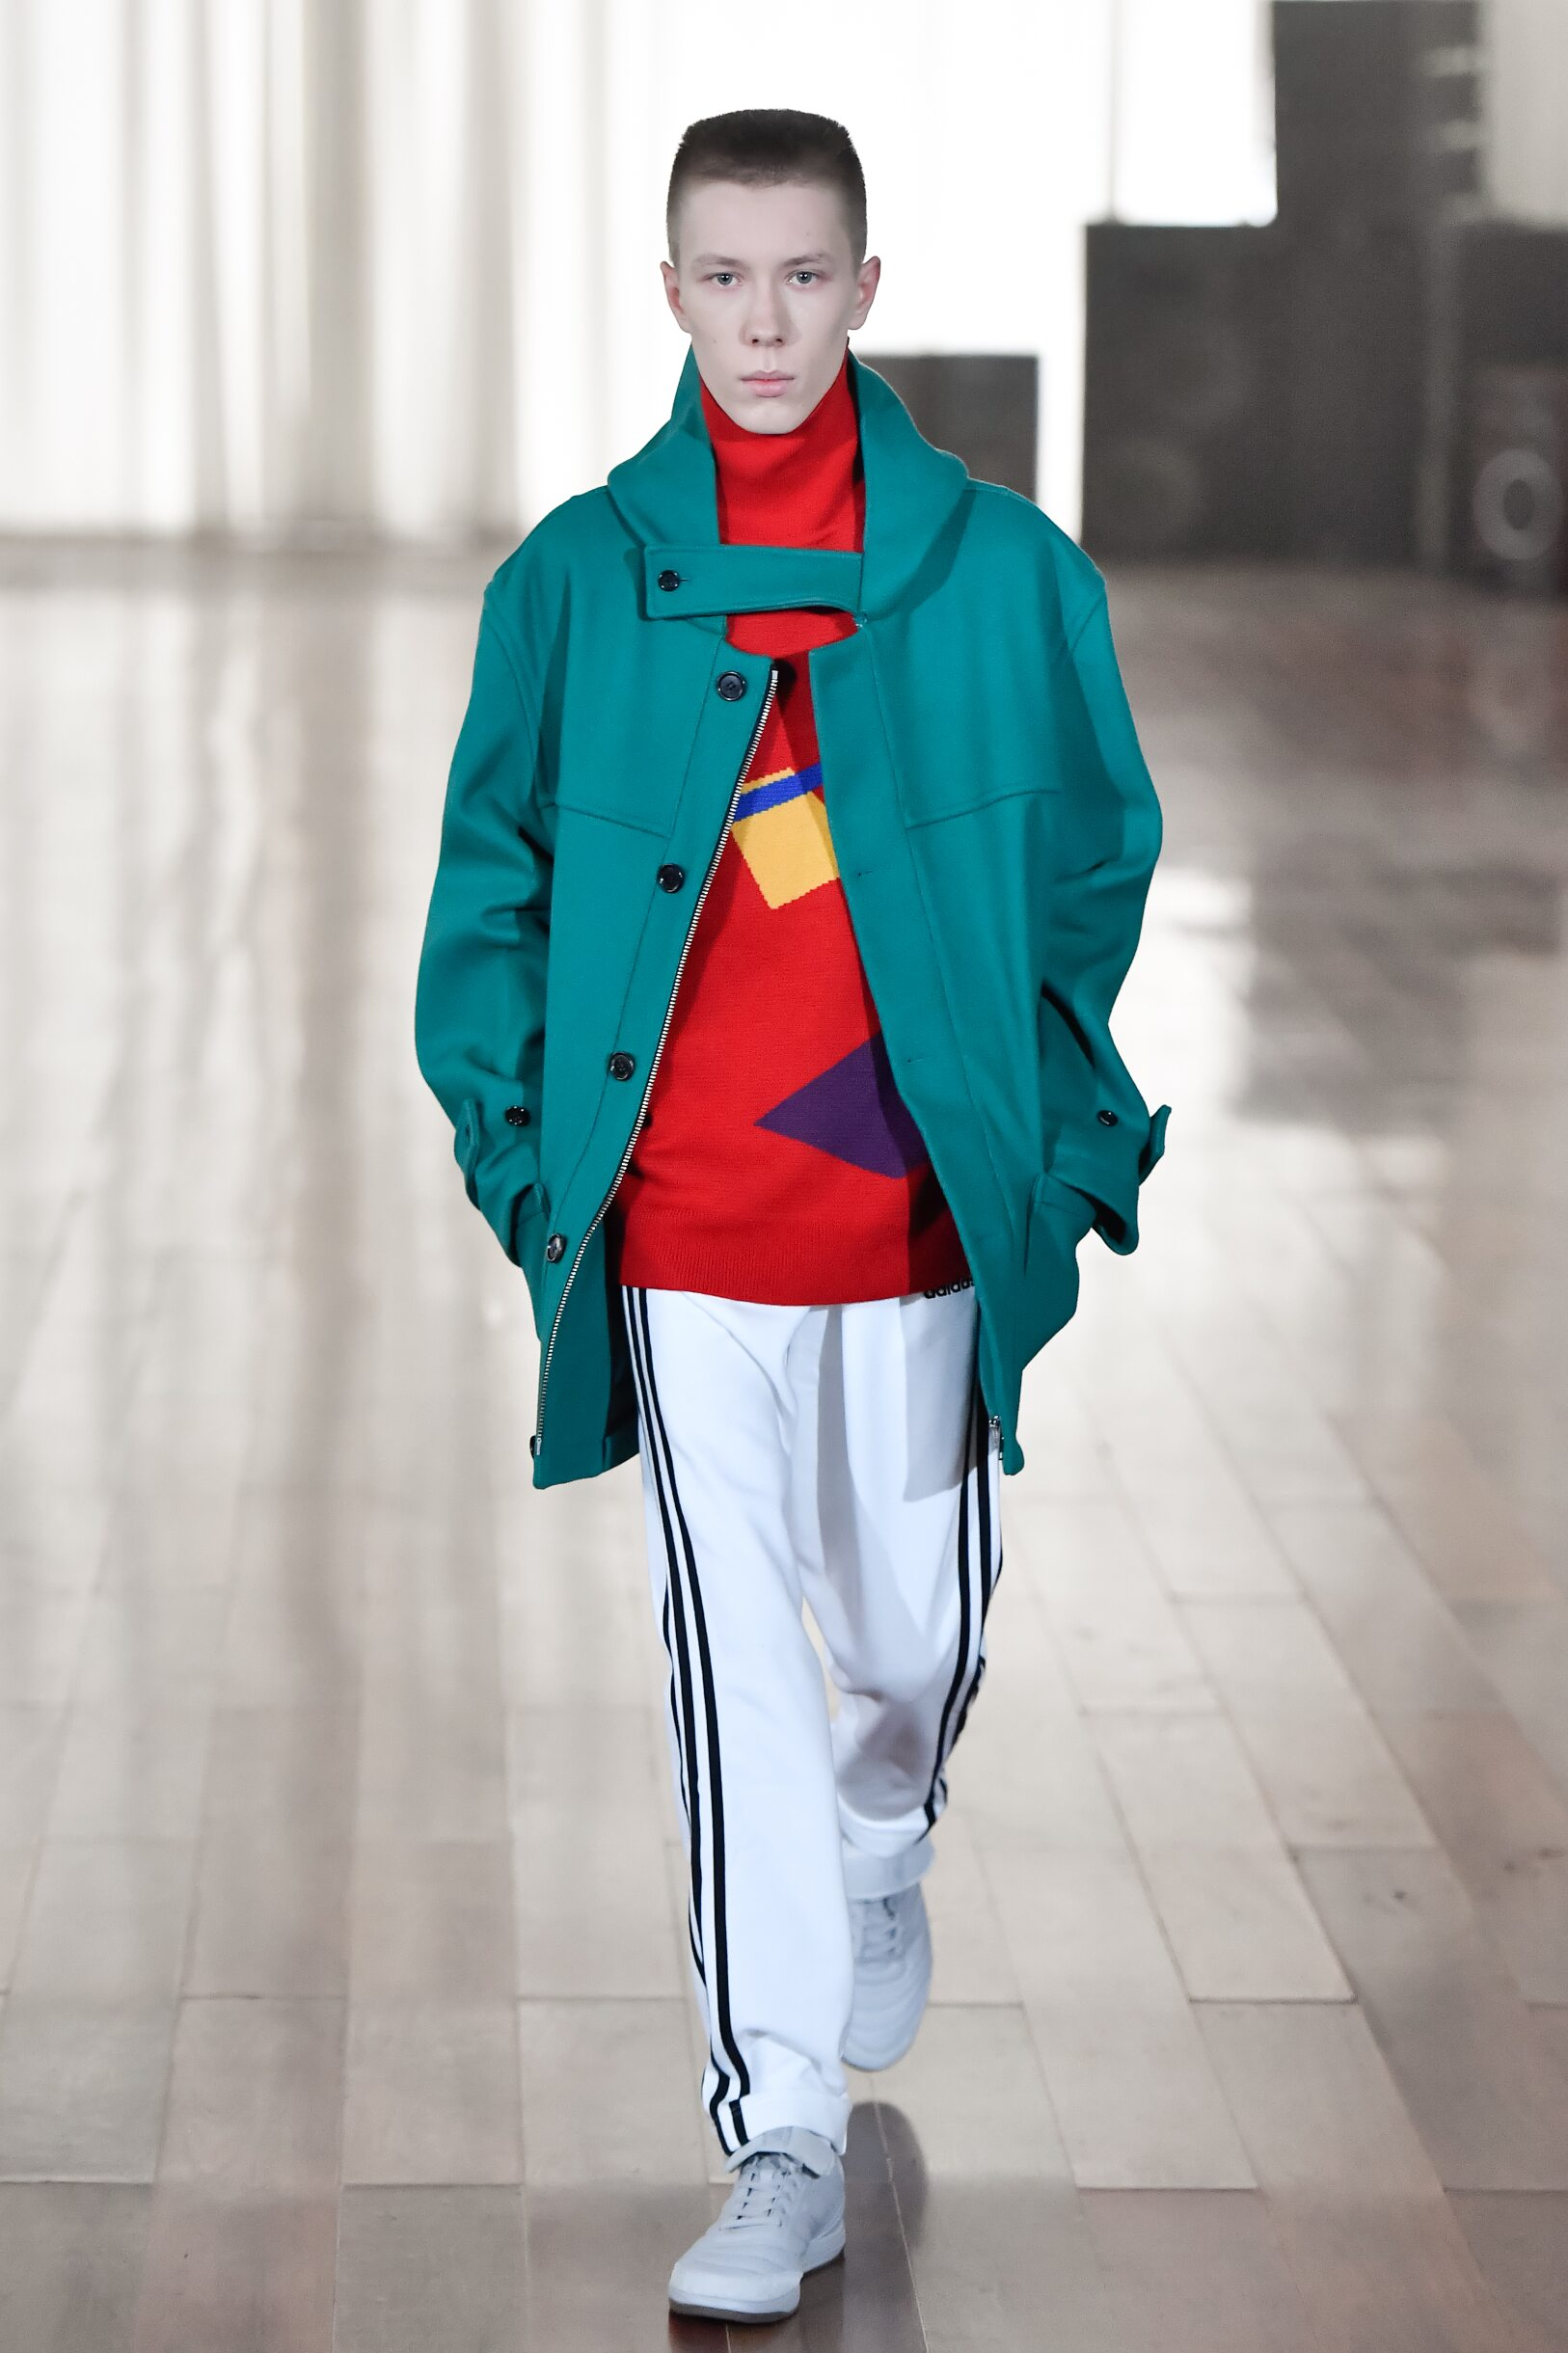 GOSHA RUBCHINSKIY FALL WINTER 2017 MENS COLLECTION The